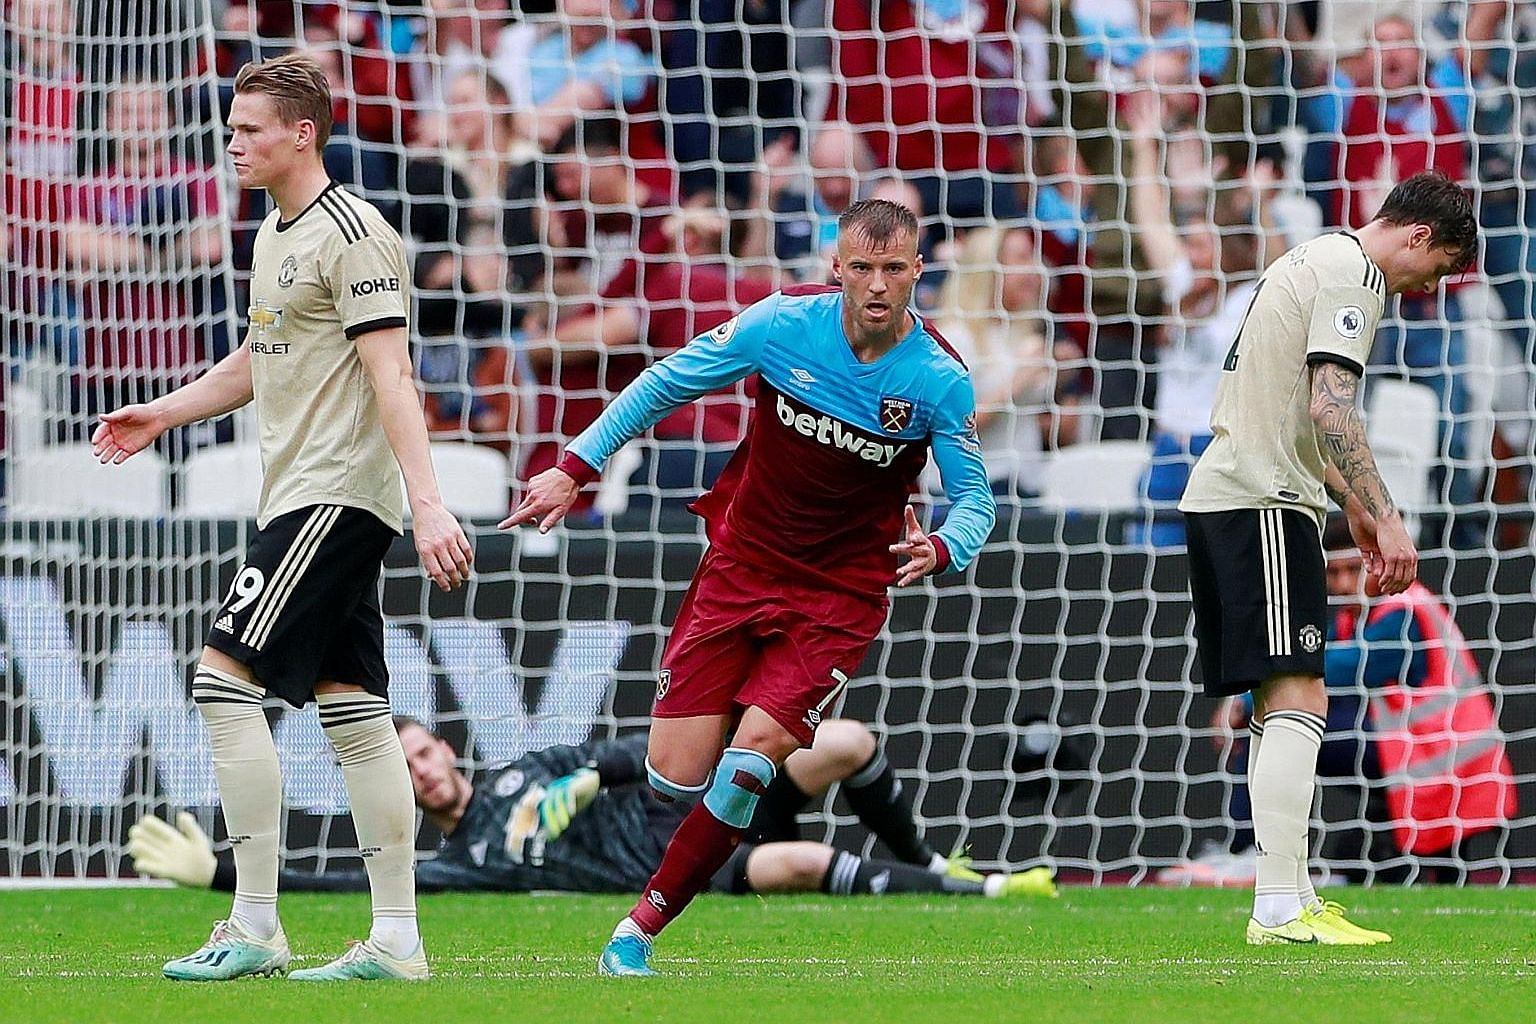 West Ham's Andriy Yarmolenko wheels away to celebrate scoring their first goal against Manchester United as Scott McTominay (left) and Tobias Lindelof appear dejected.